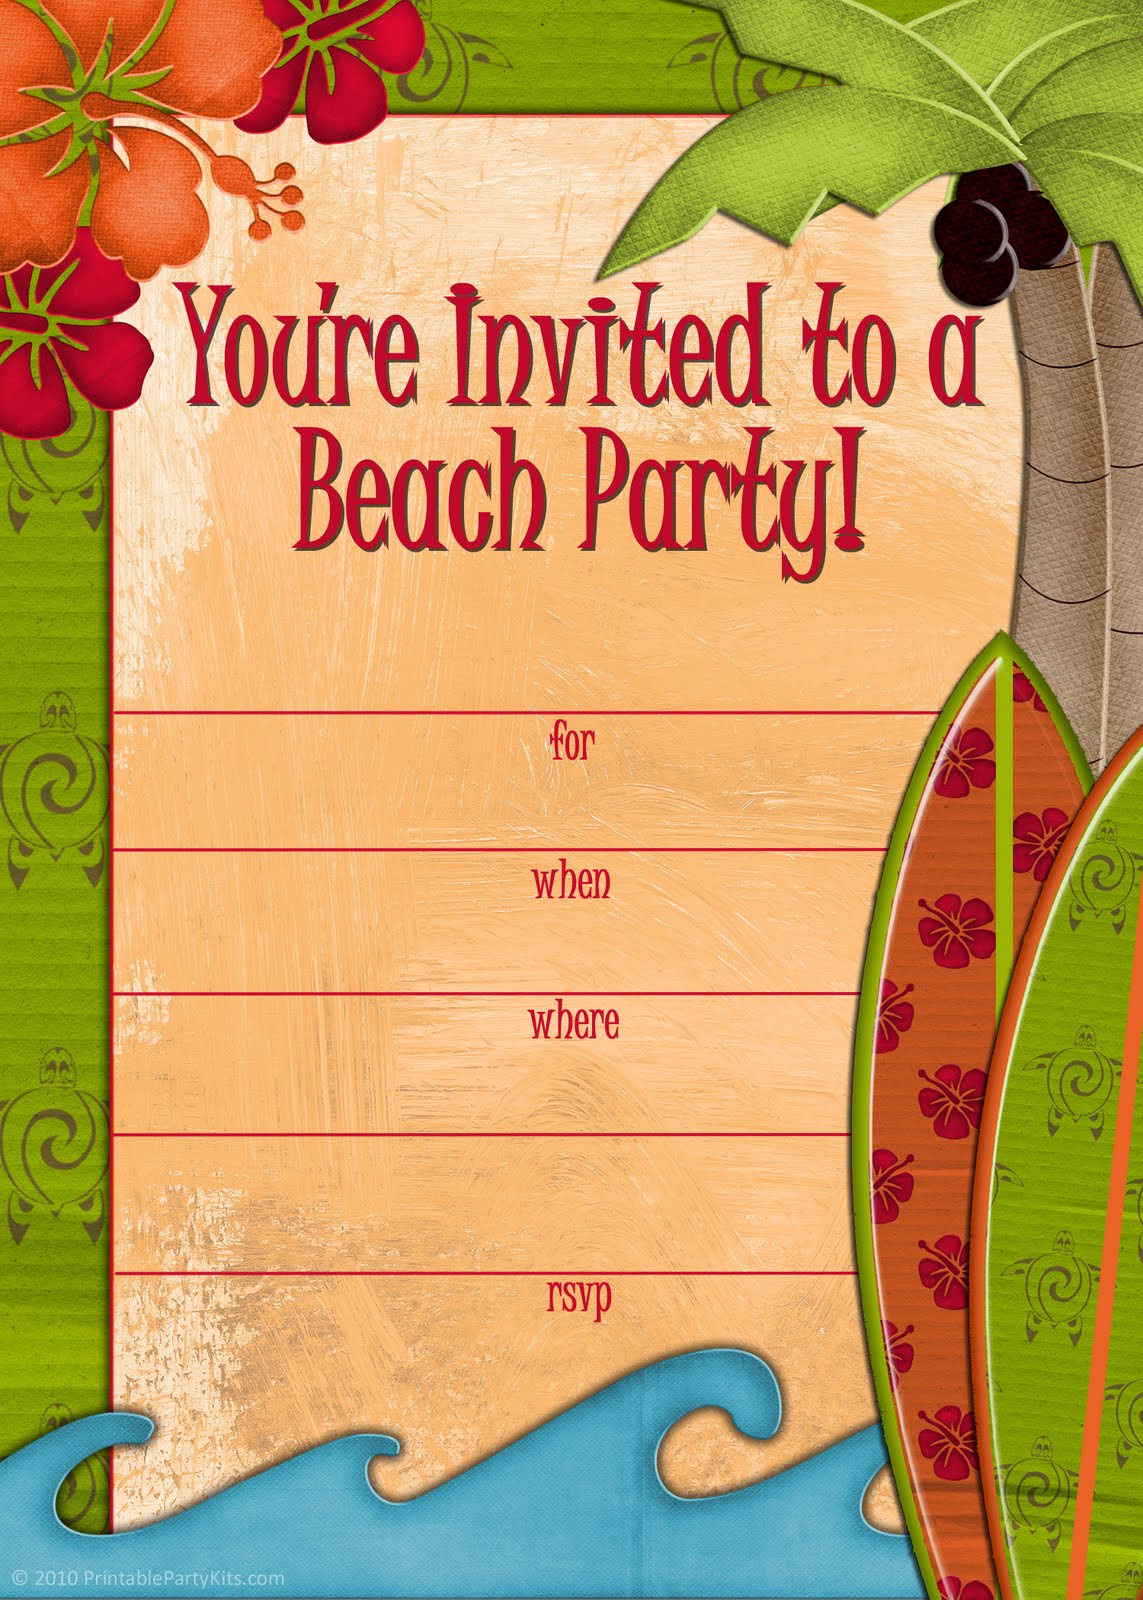 It's just a photo of Légend Beach Party Invitations Free Printable